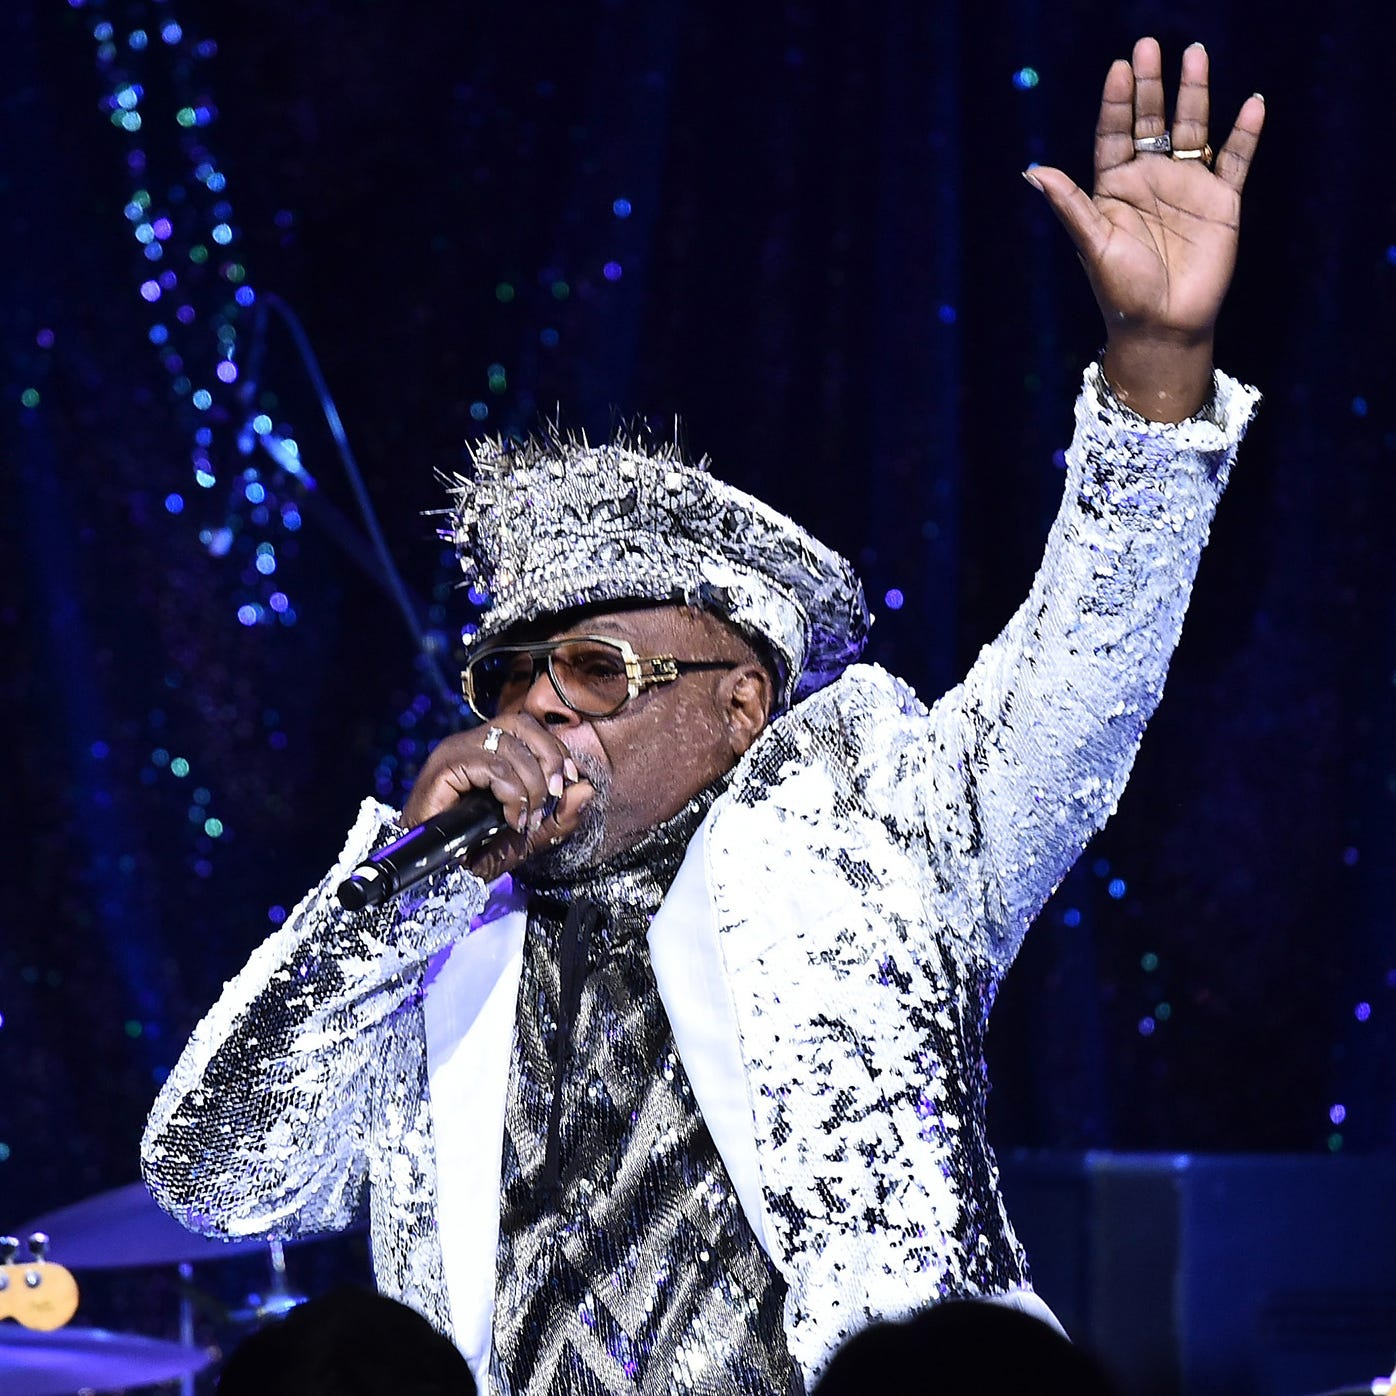 George Clinton P-Funk farewell tour set for June 20 at Freedom Hill